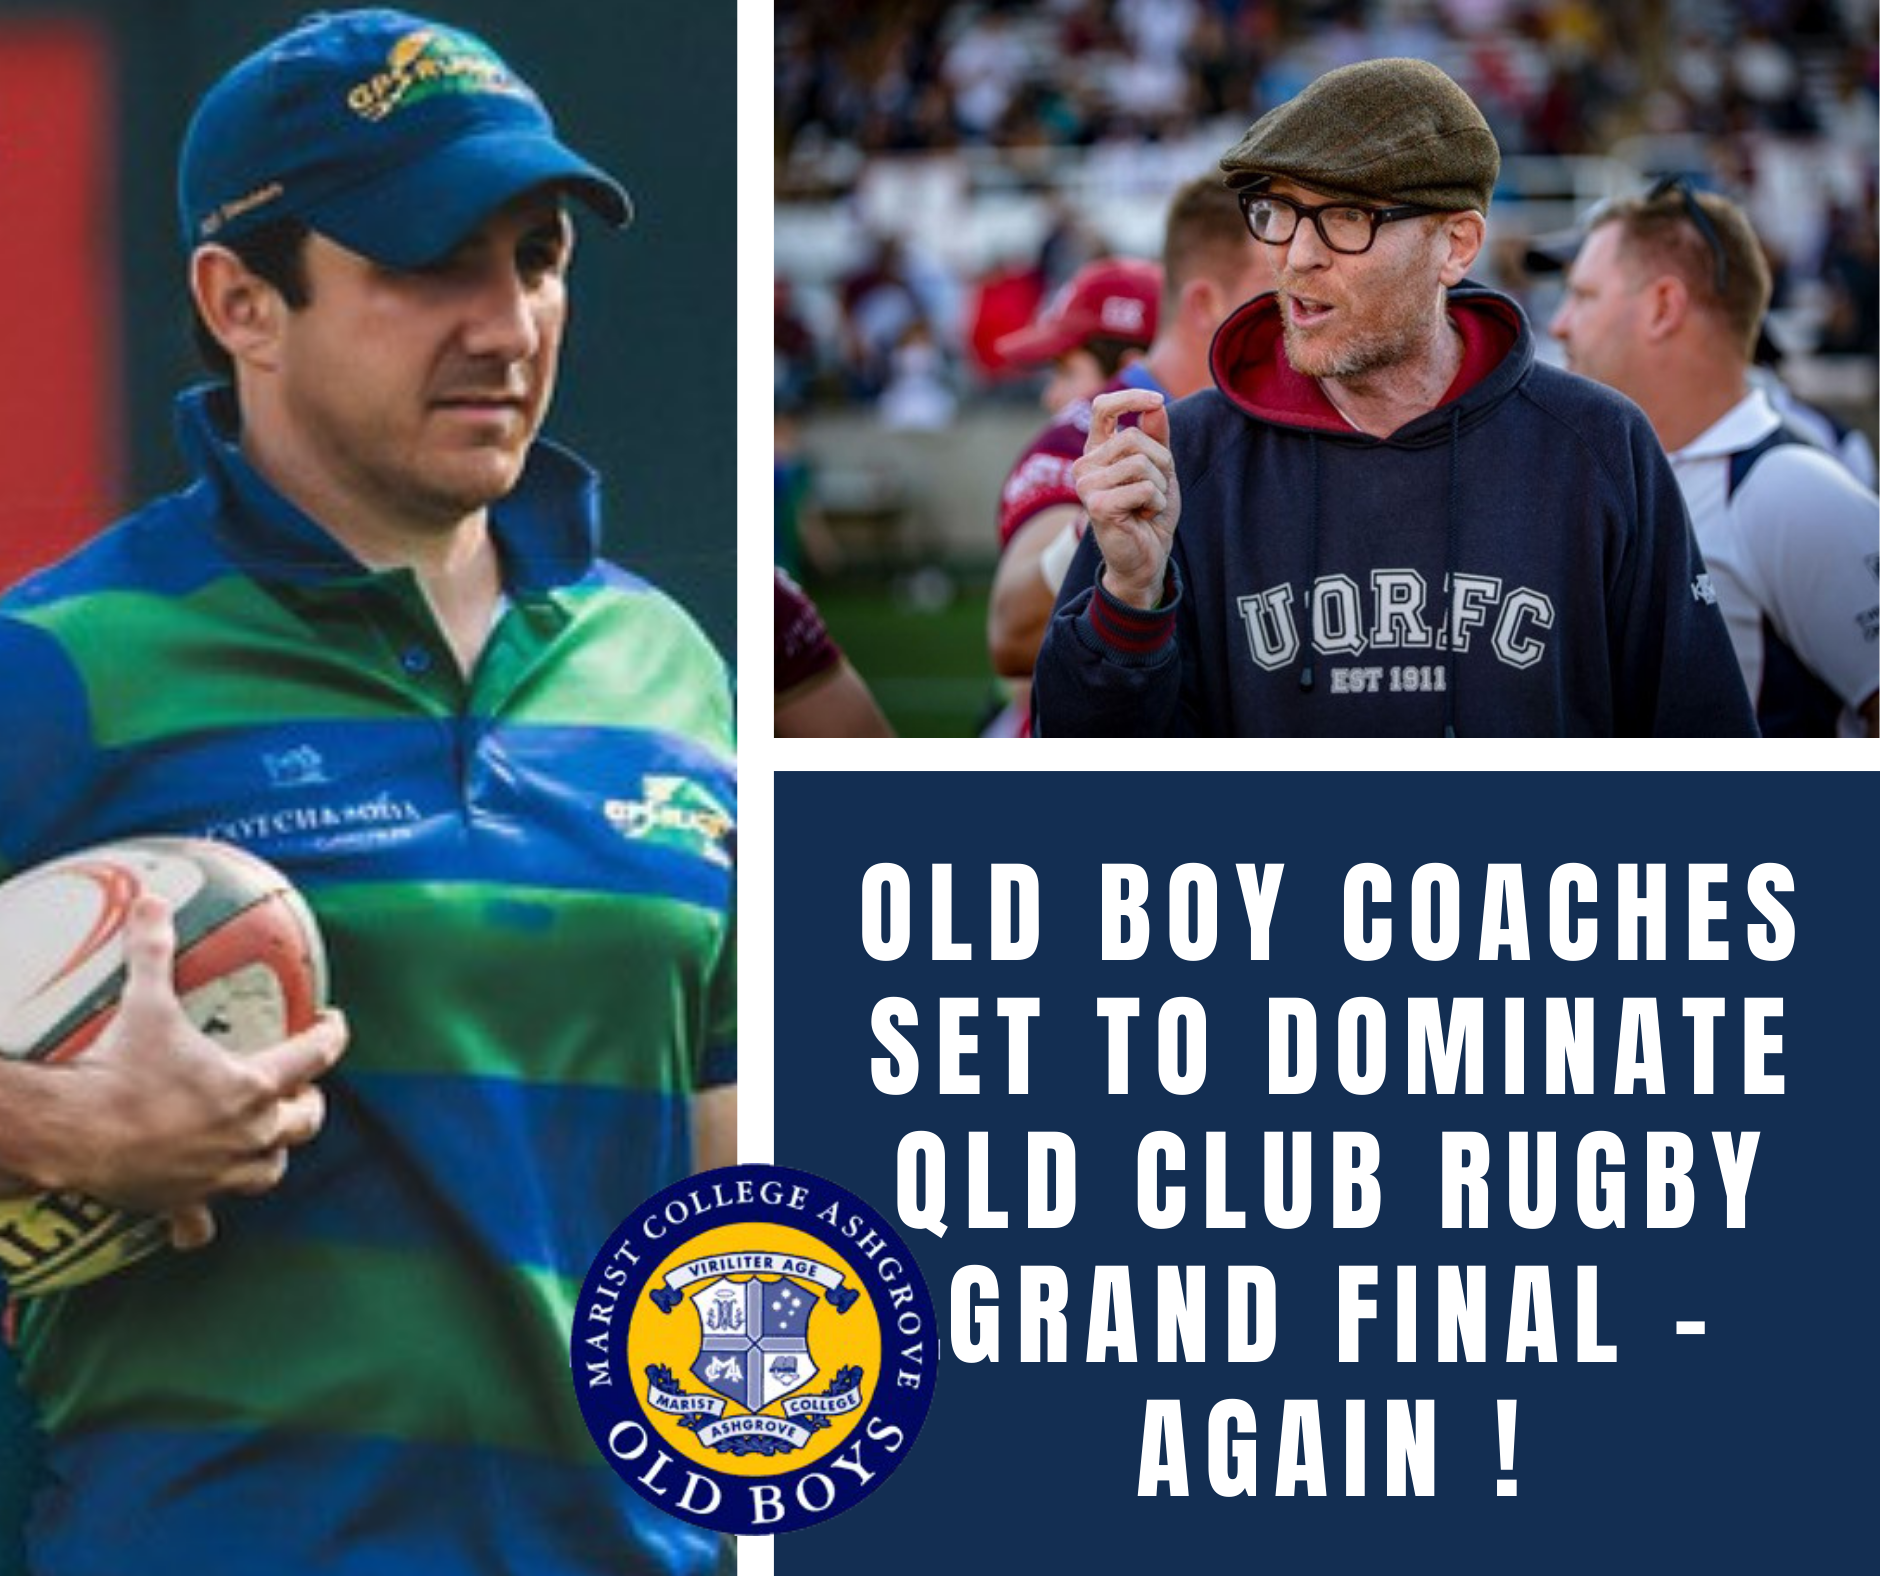 Old Boy Coaches Set to Dominate QLD Club Rugby Grand Final – Again!